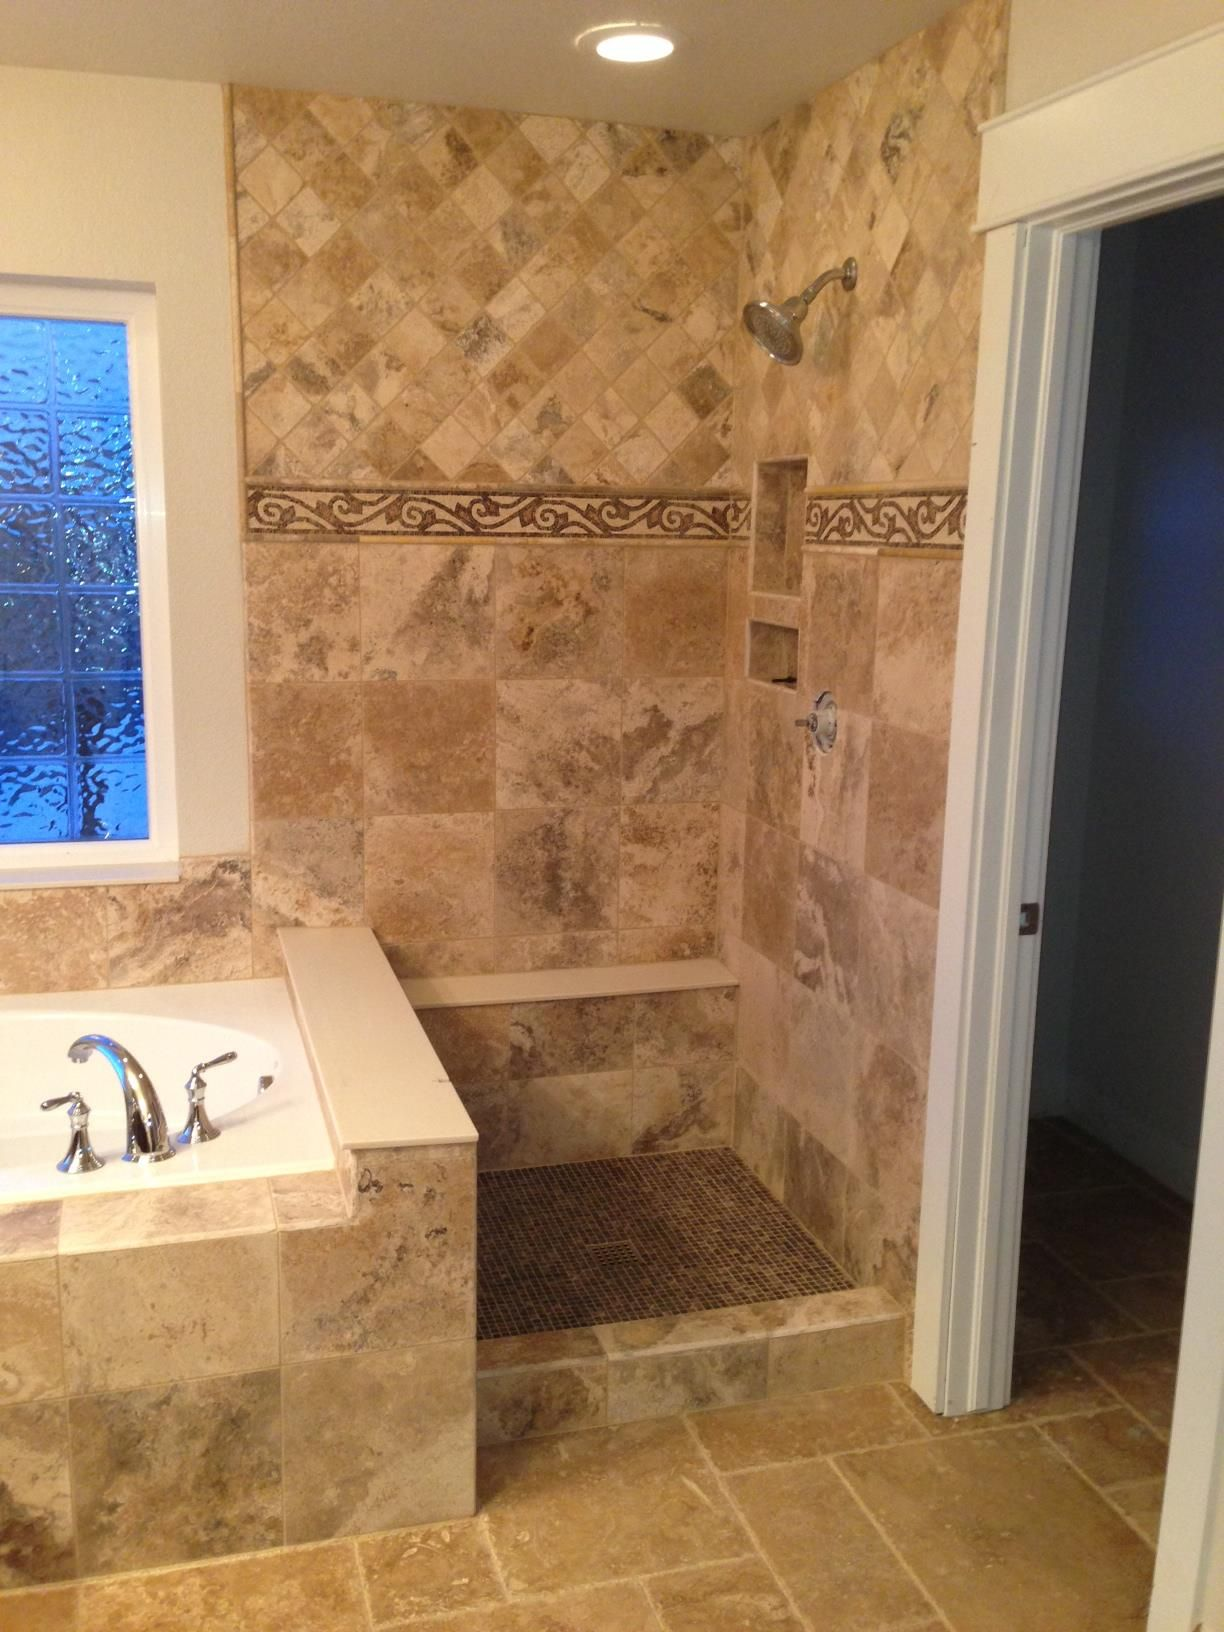 Travertine Tile Bathroom Ideas travertine tile shower | a world of tile - happy customers